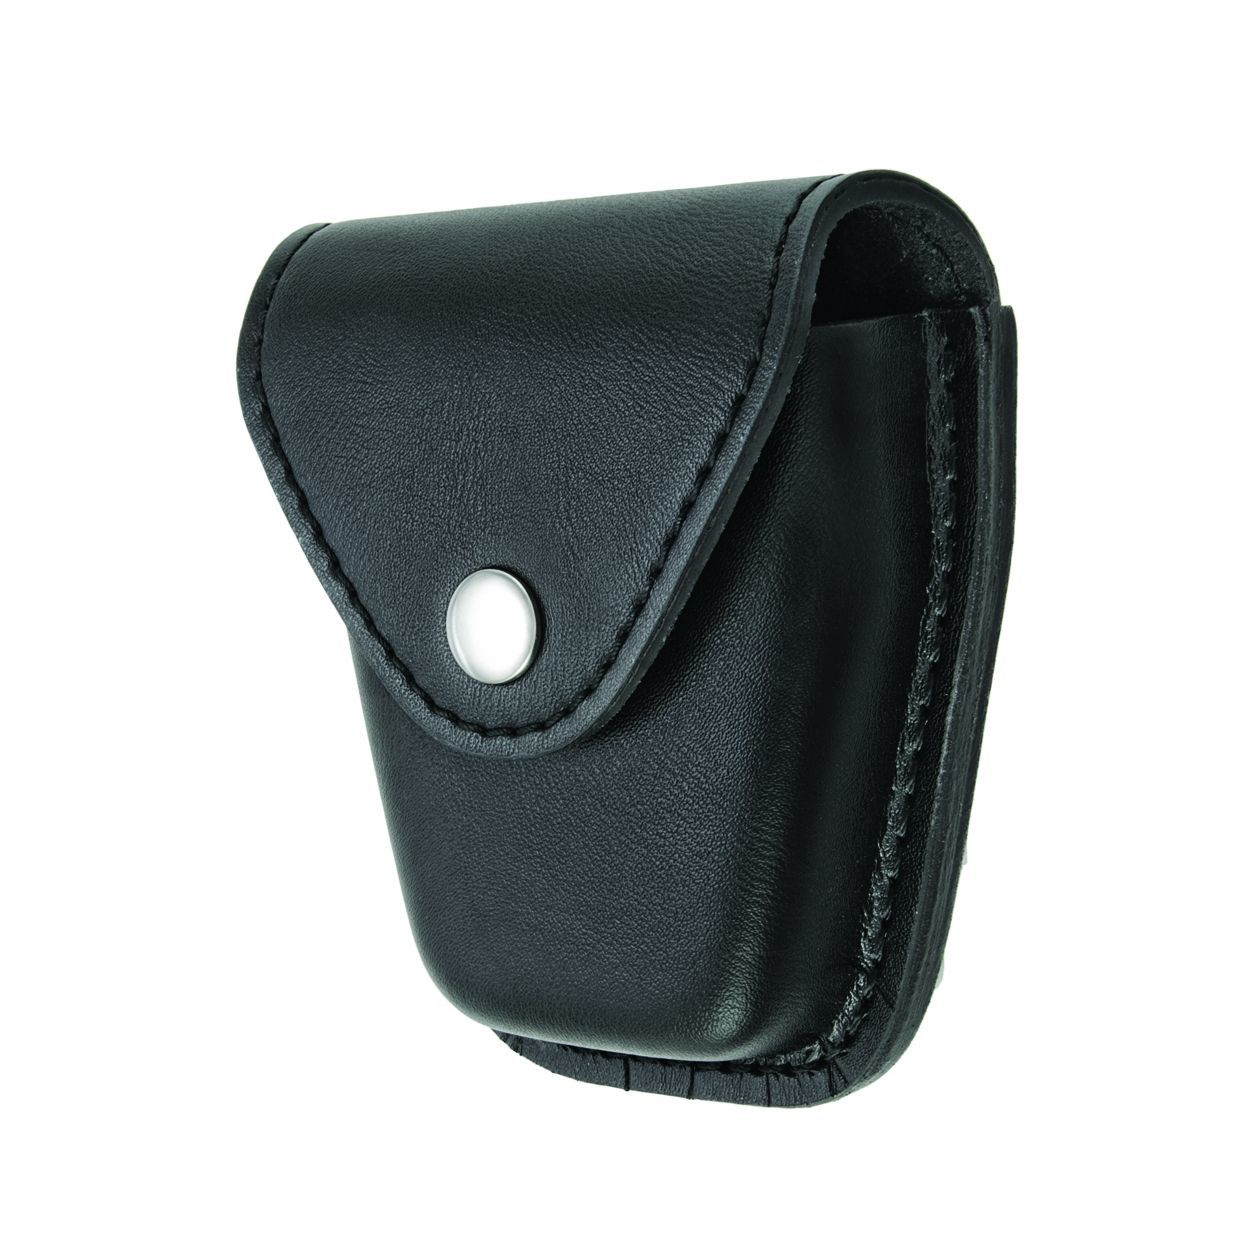 Handcuff Case, Single, Med/Hinged, AirTek, Smooth, Nickel Snap-